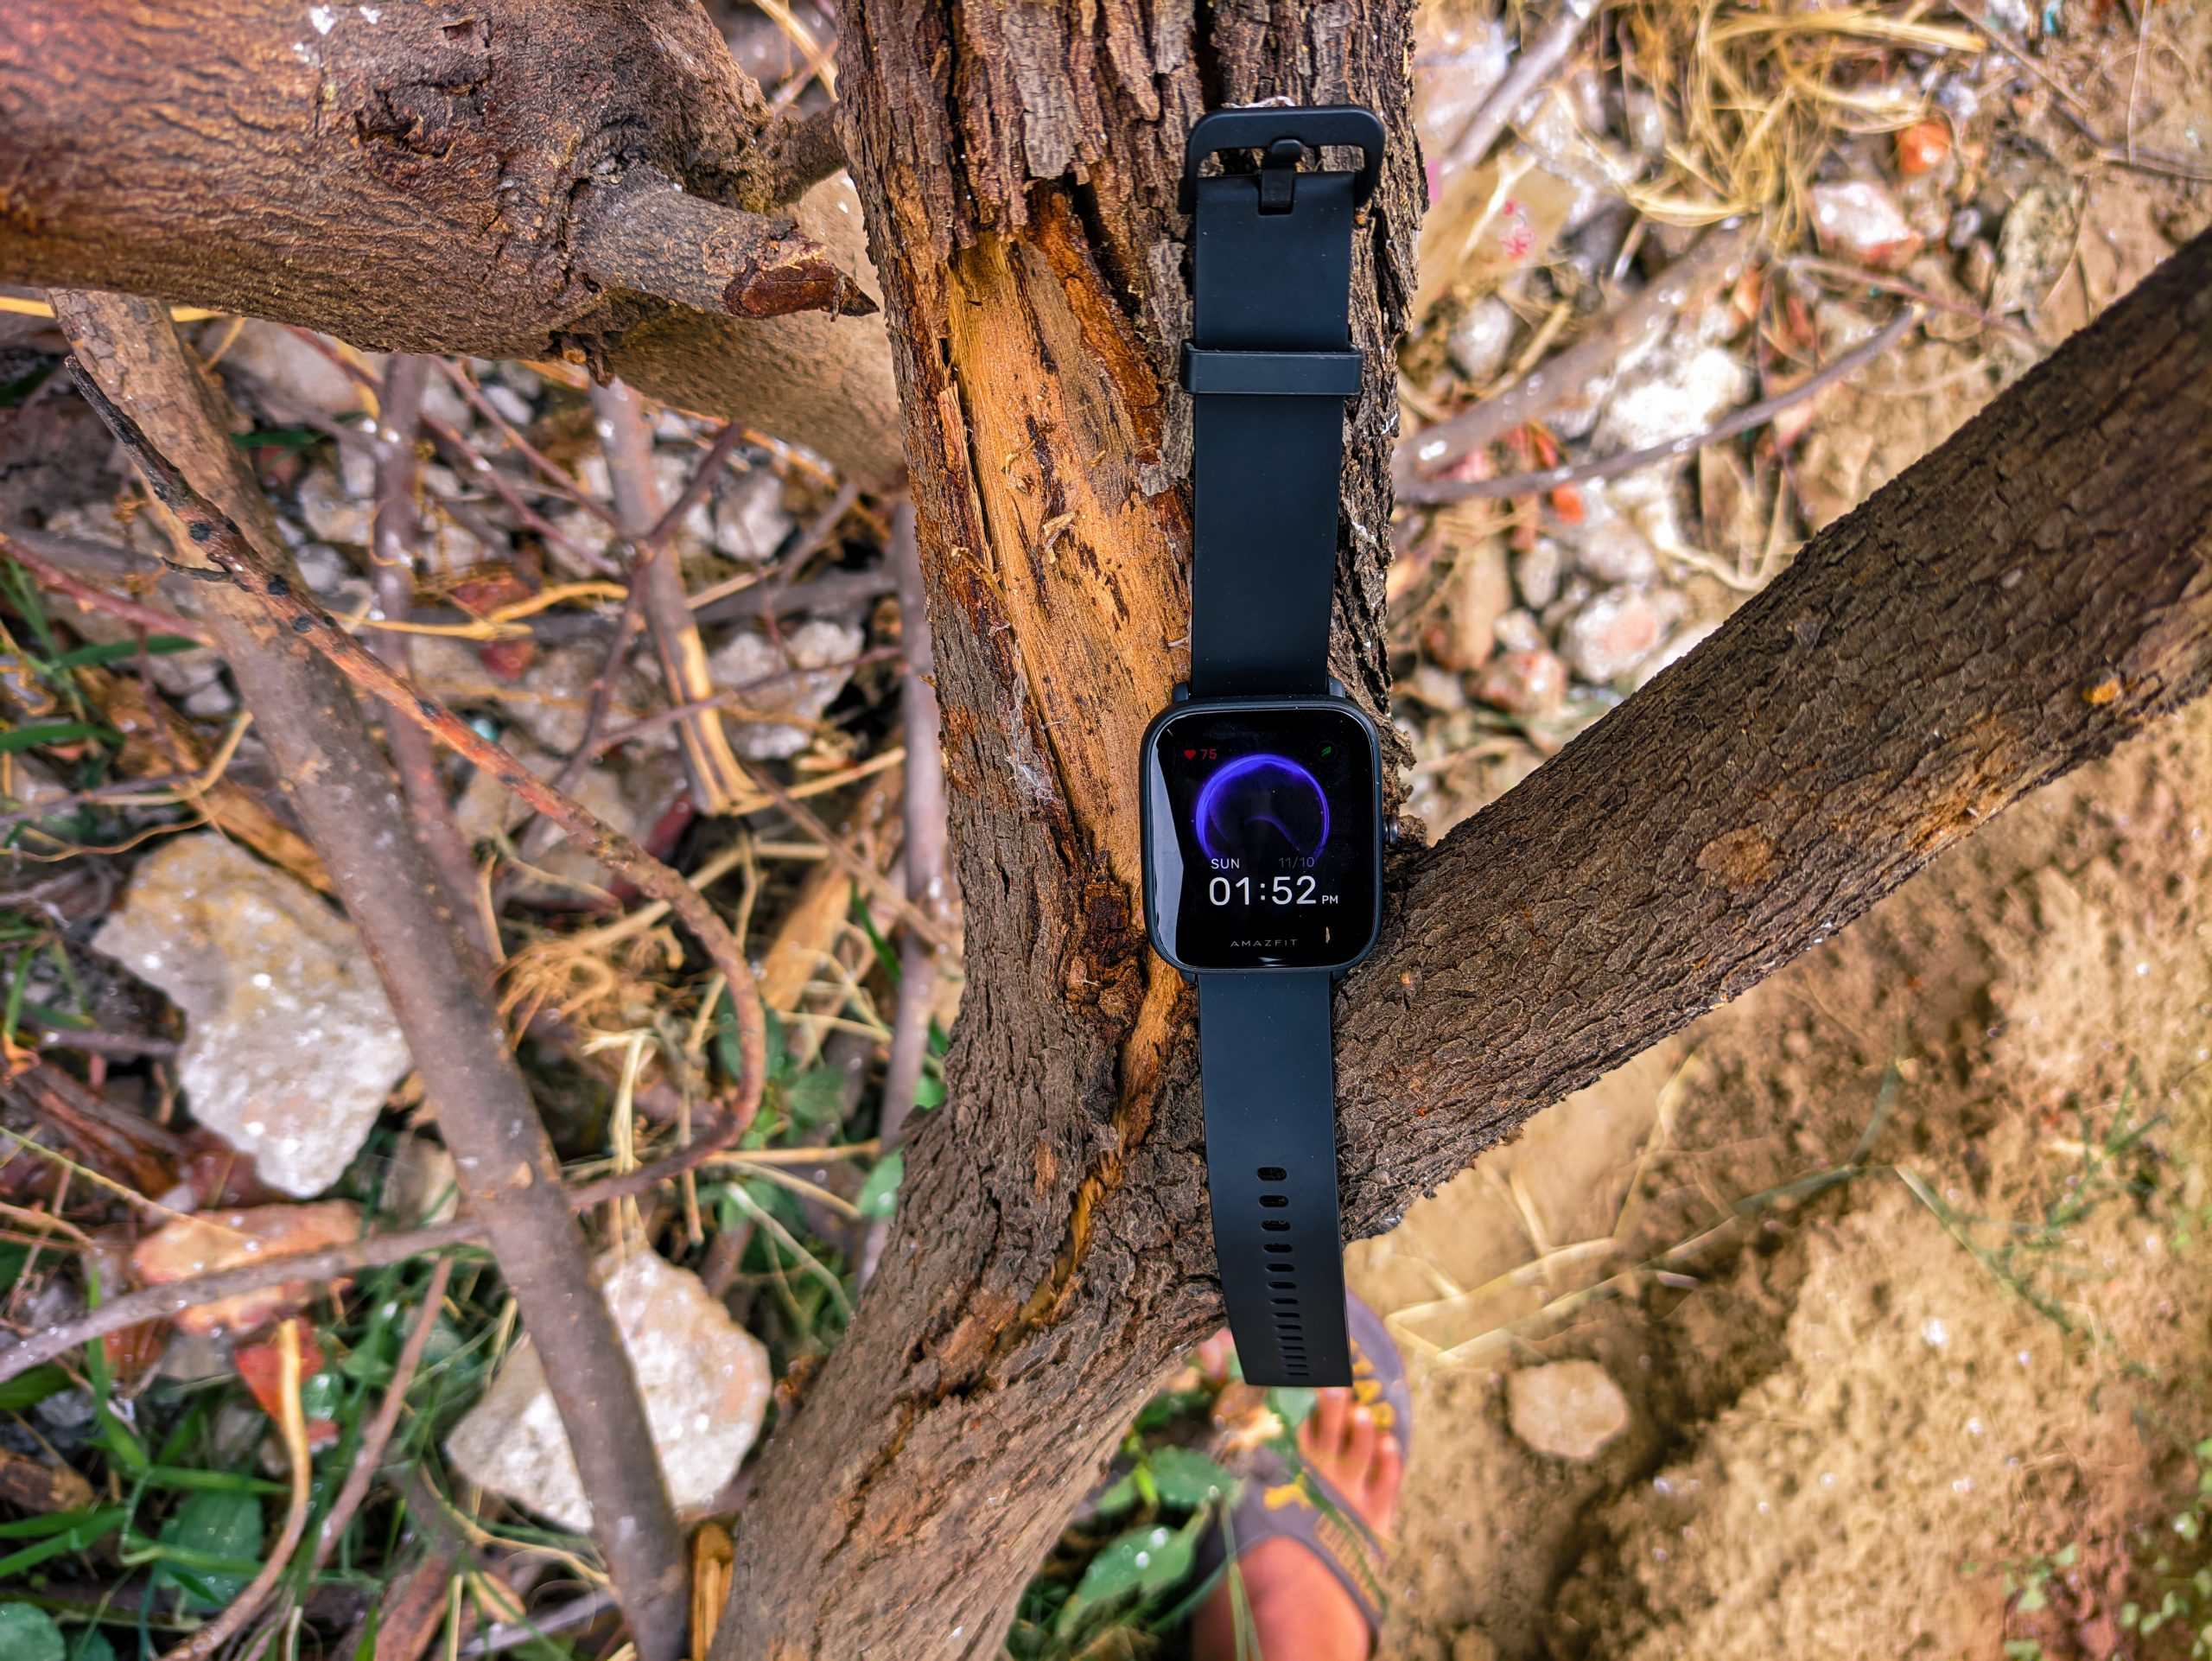 Amazfit Bip U Review: The Best Smartwatch under Rs 3500 is here